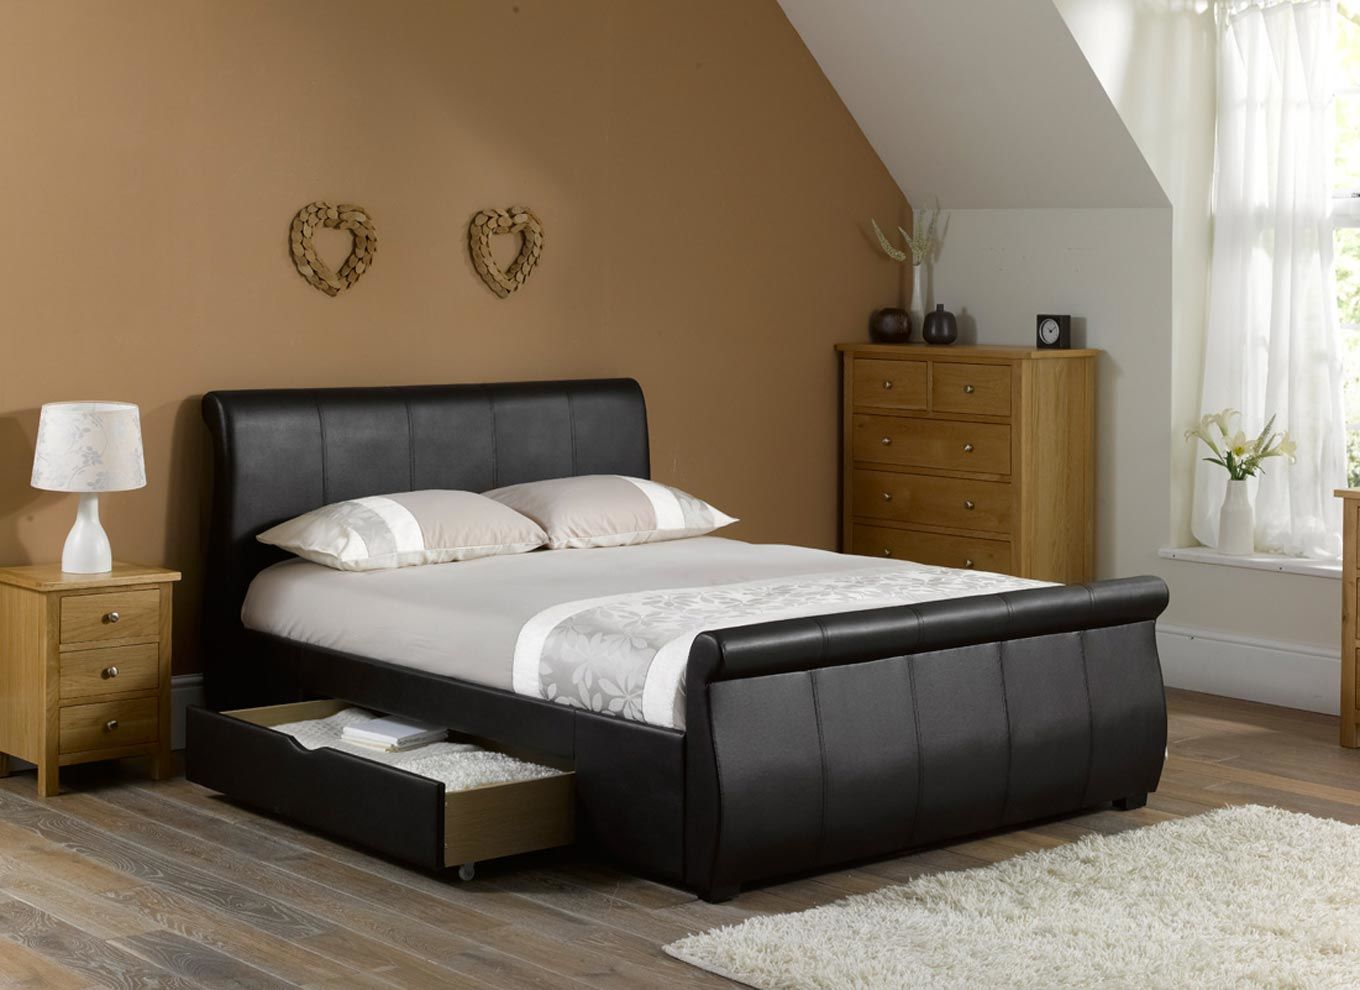 Picture of: Leather Diy Platform Bed with Storage Plans